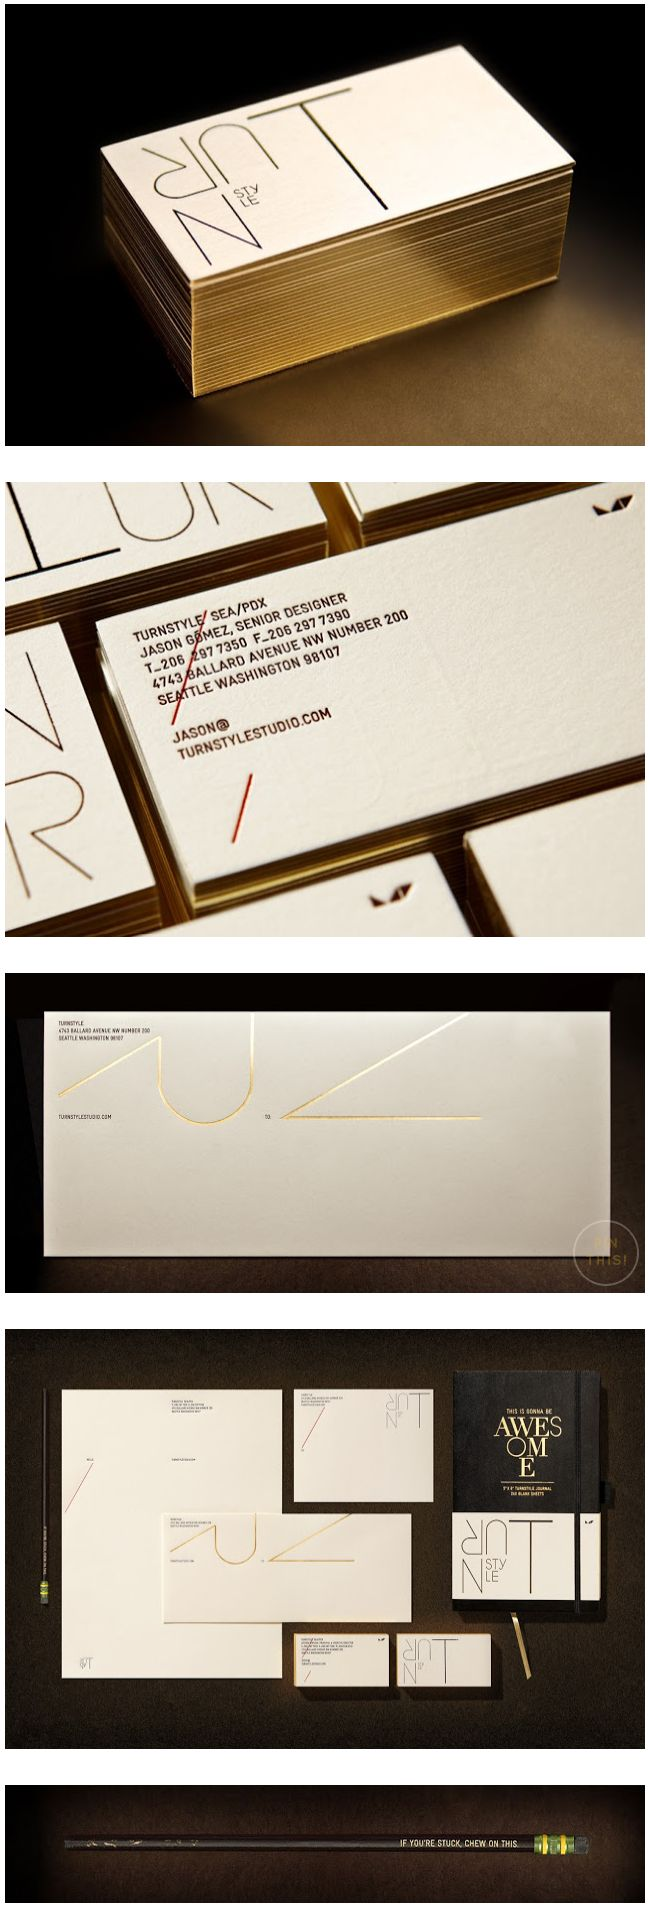 72 best Foil stamped images on Pinterest | Business cards, Graphics ...